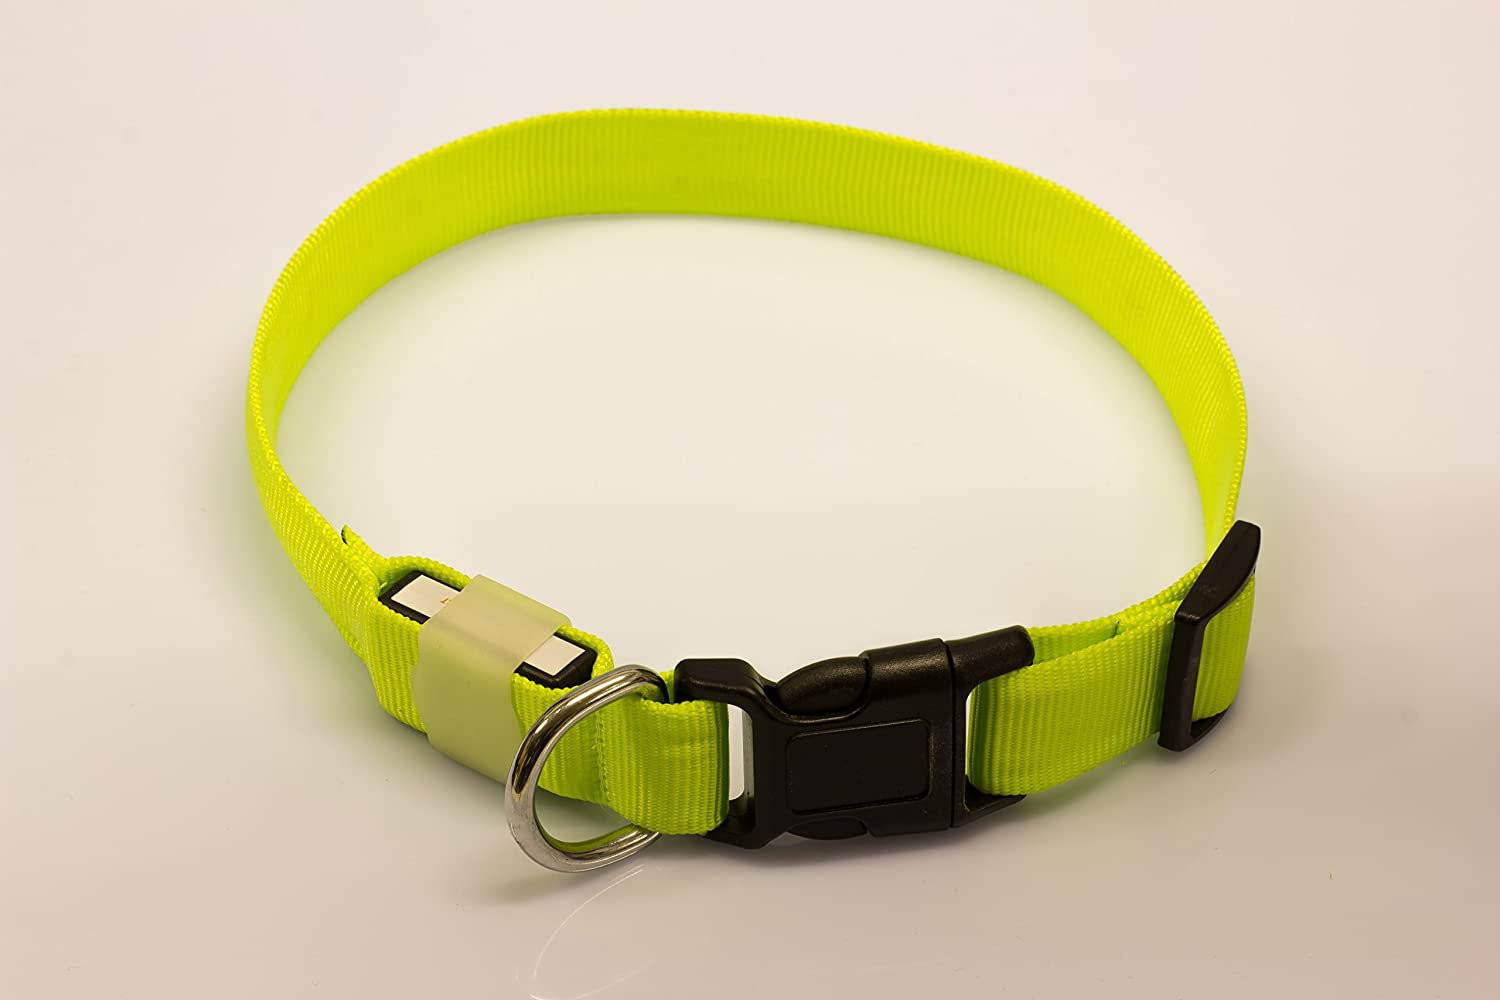 LED Bombilla Collar Basic 1 per USB cargador, tamaño M, color ...